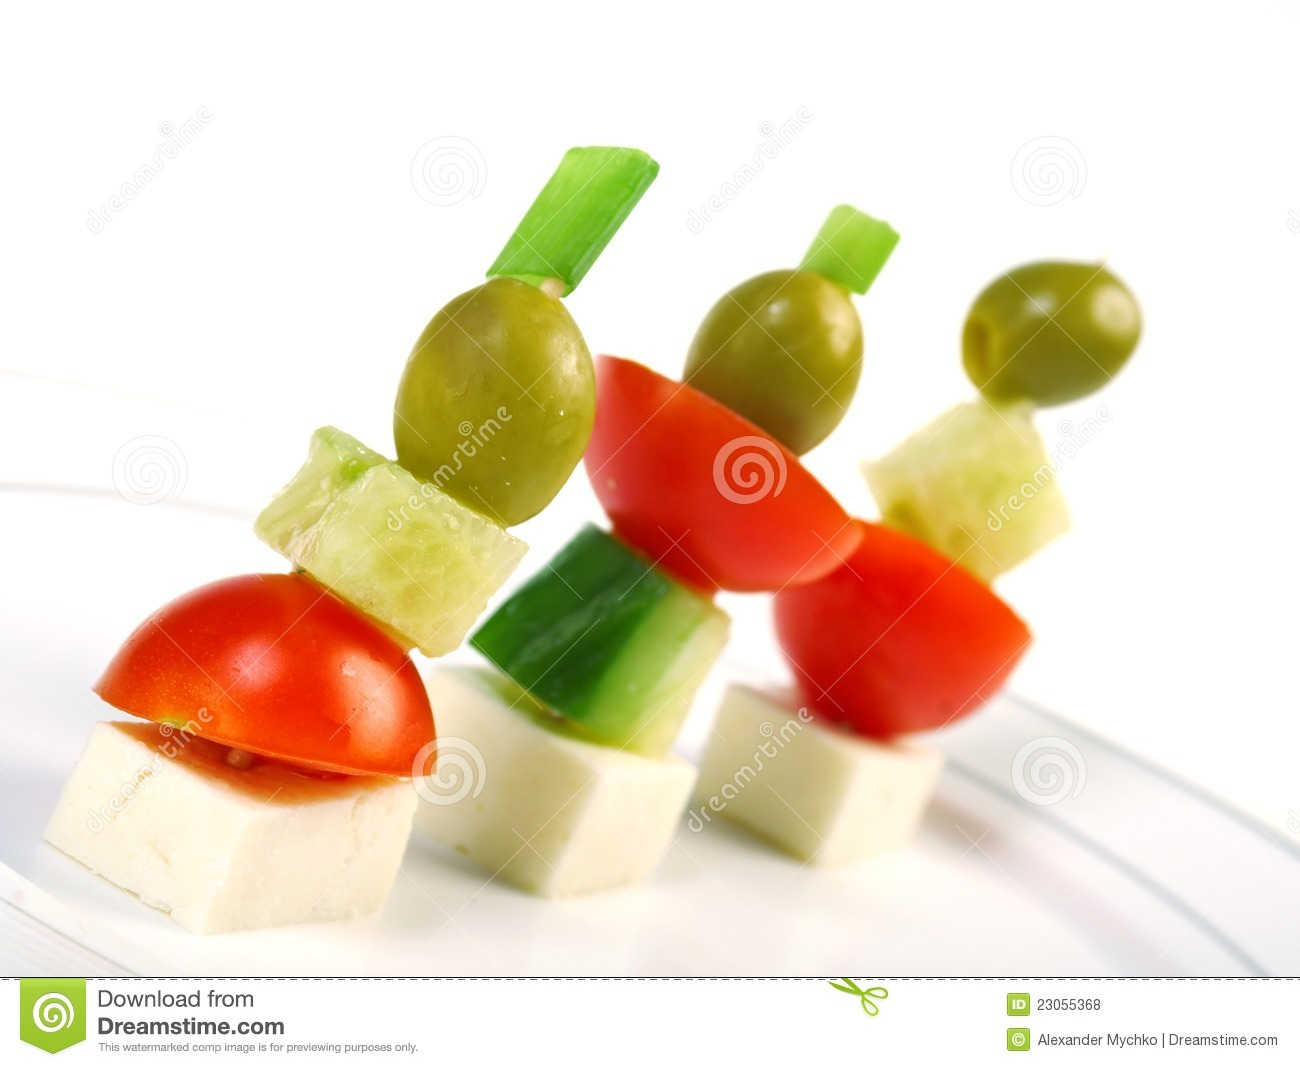 Canape platter with cheese cucumber tomato olives royalty for Canape platters